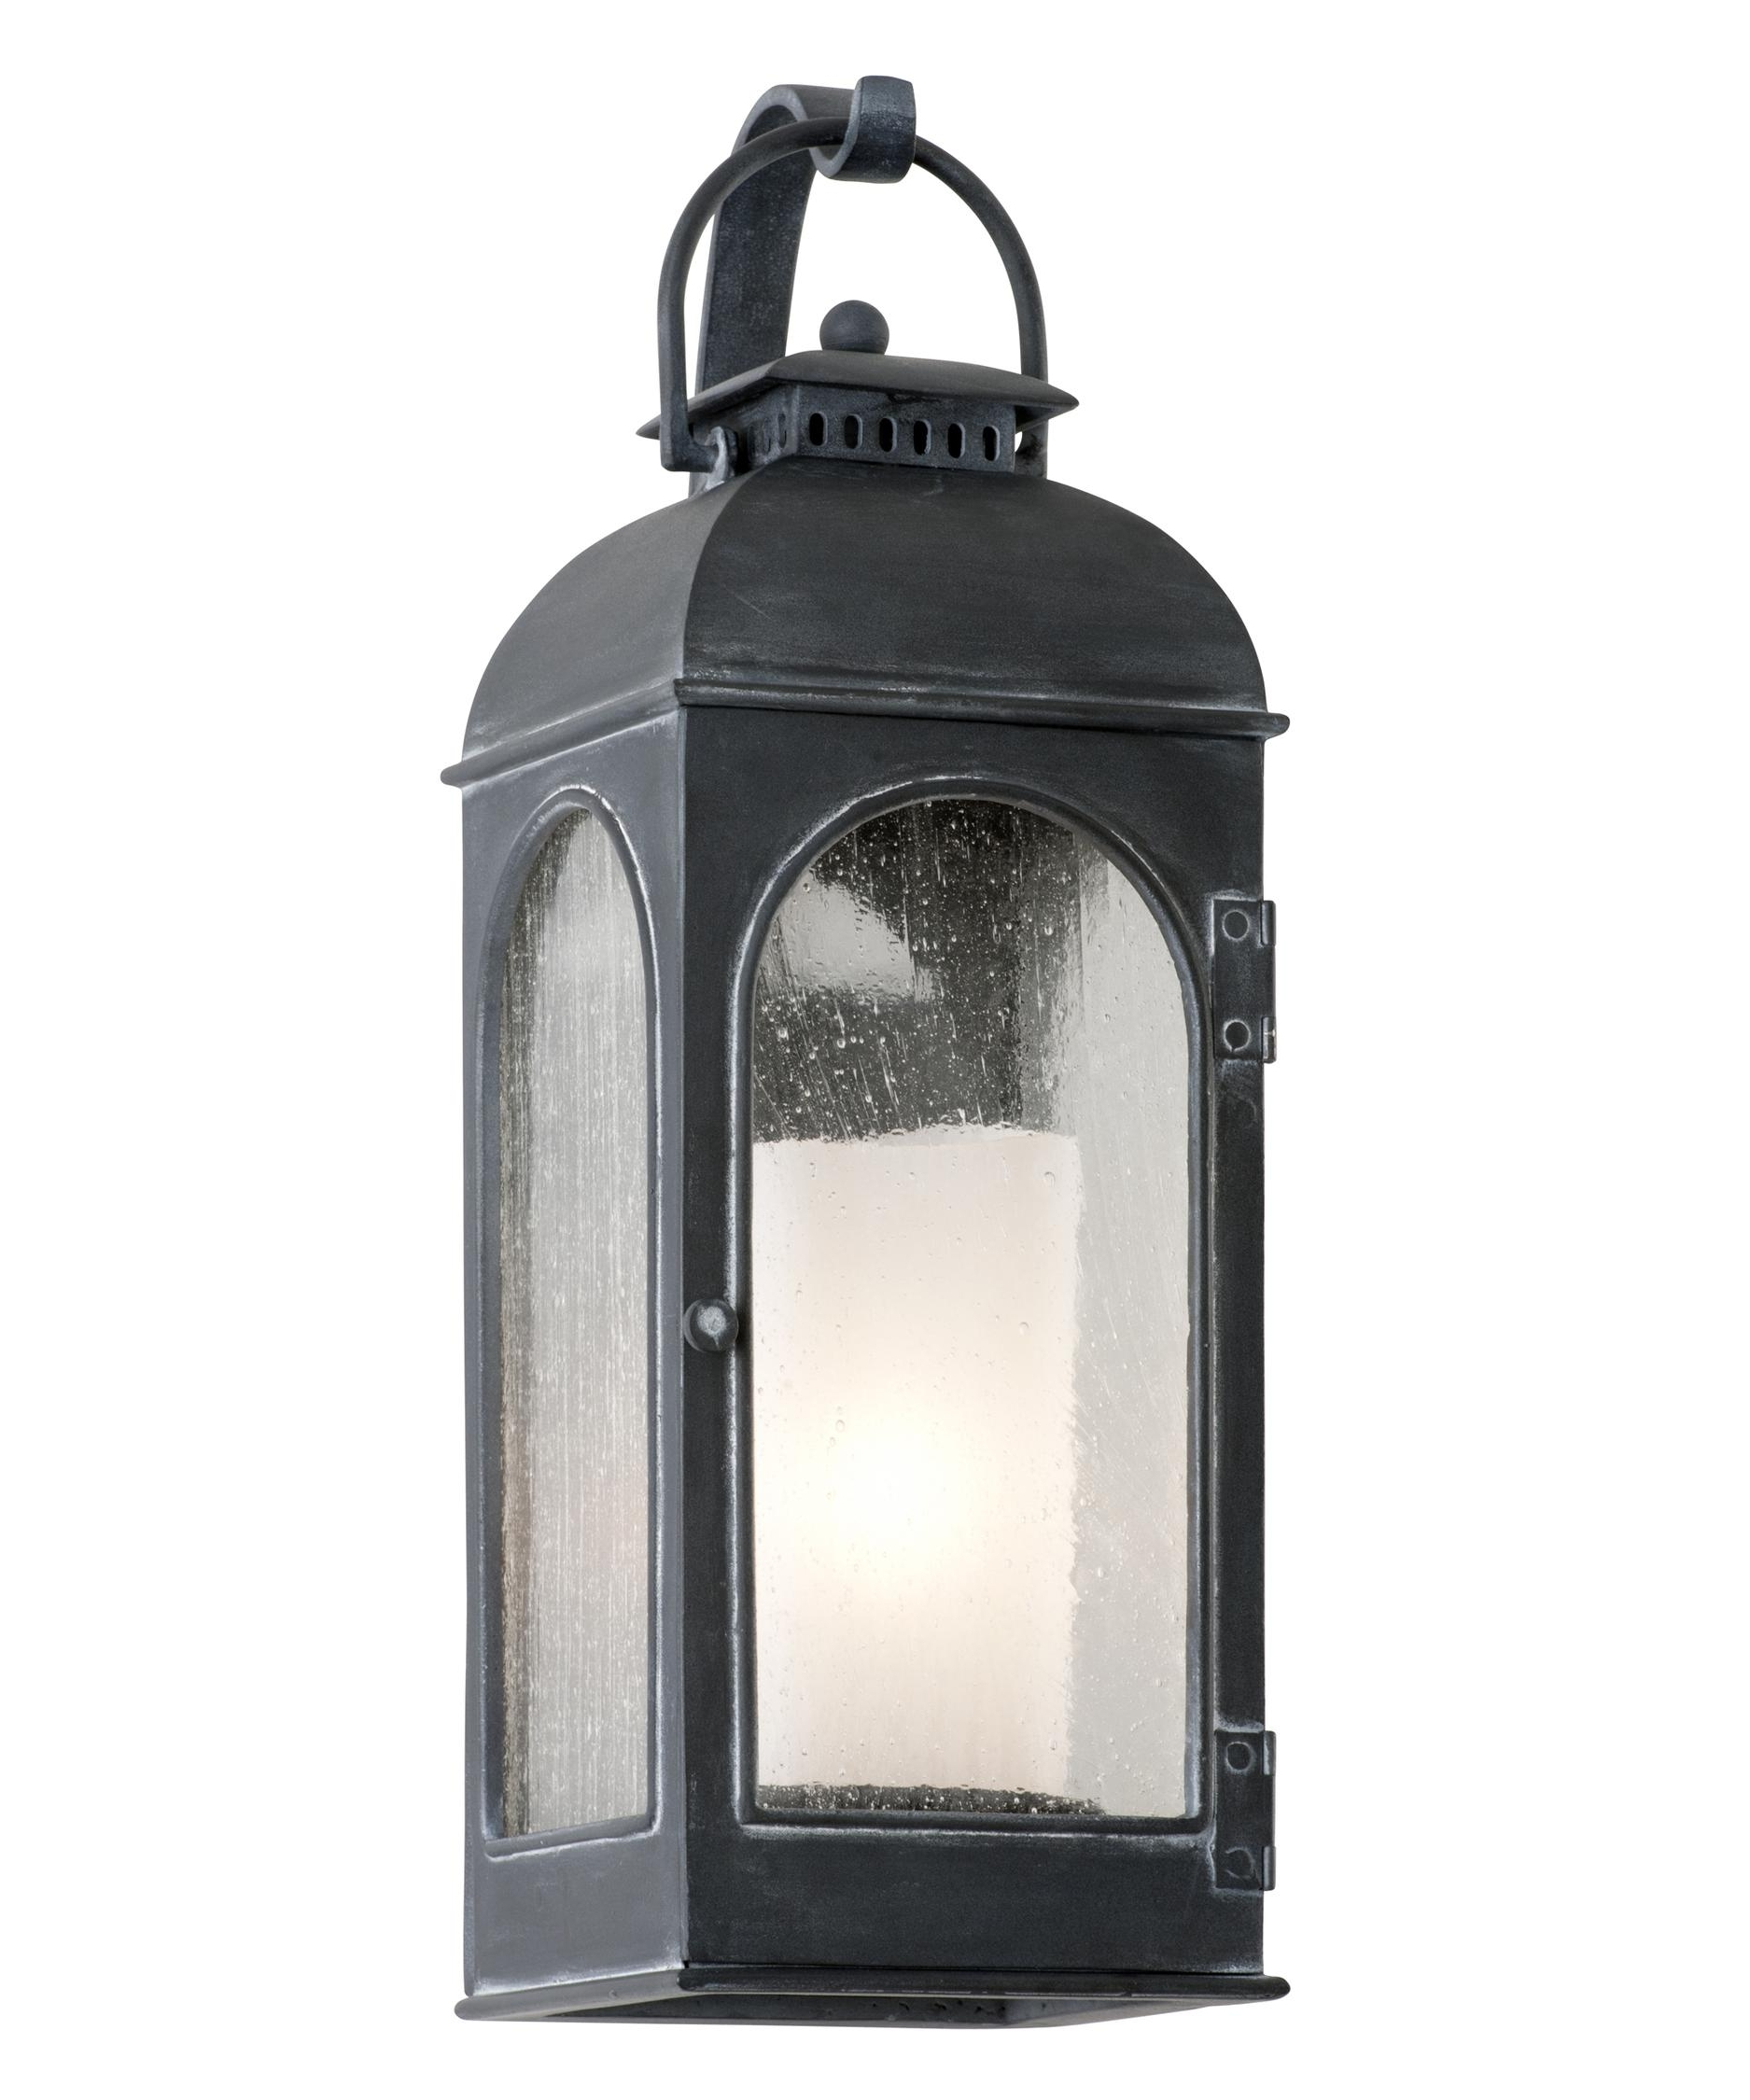 Plastic Lanterns Outdoor Lights Lightingcool Front Porch For Barn Throughout Famous Outdoor Lanterns For Porch (View 17 of 20)